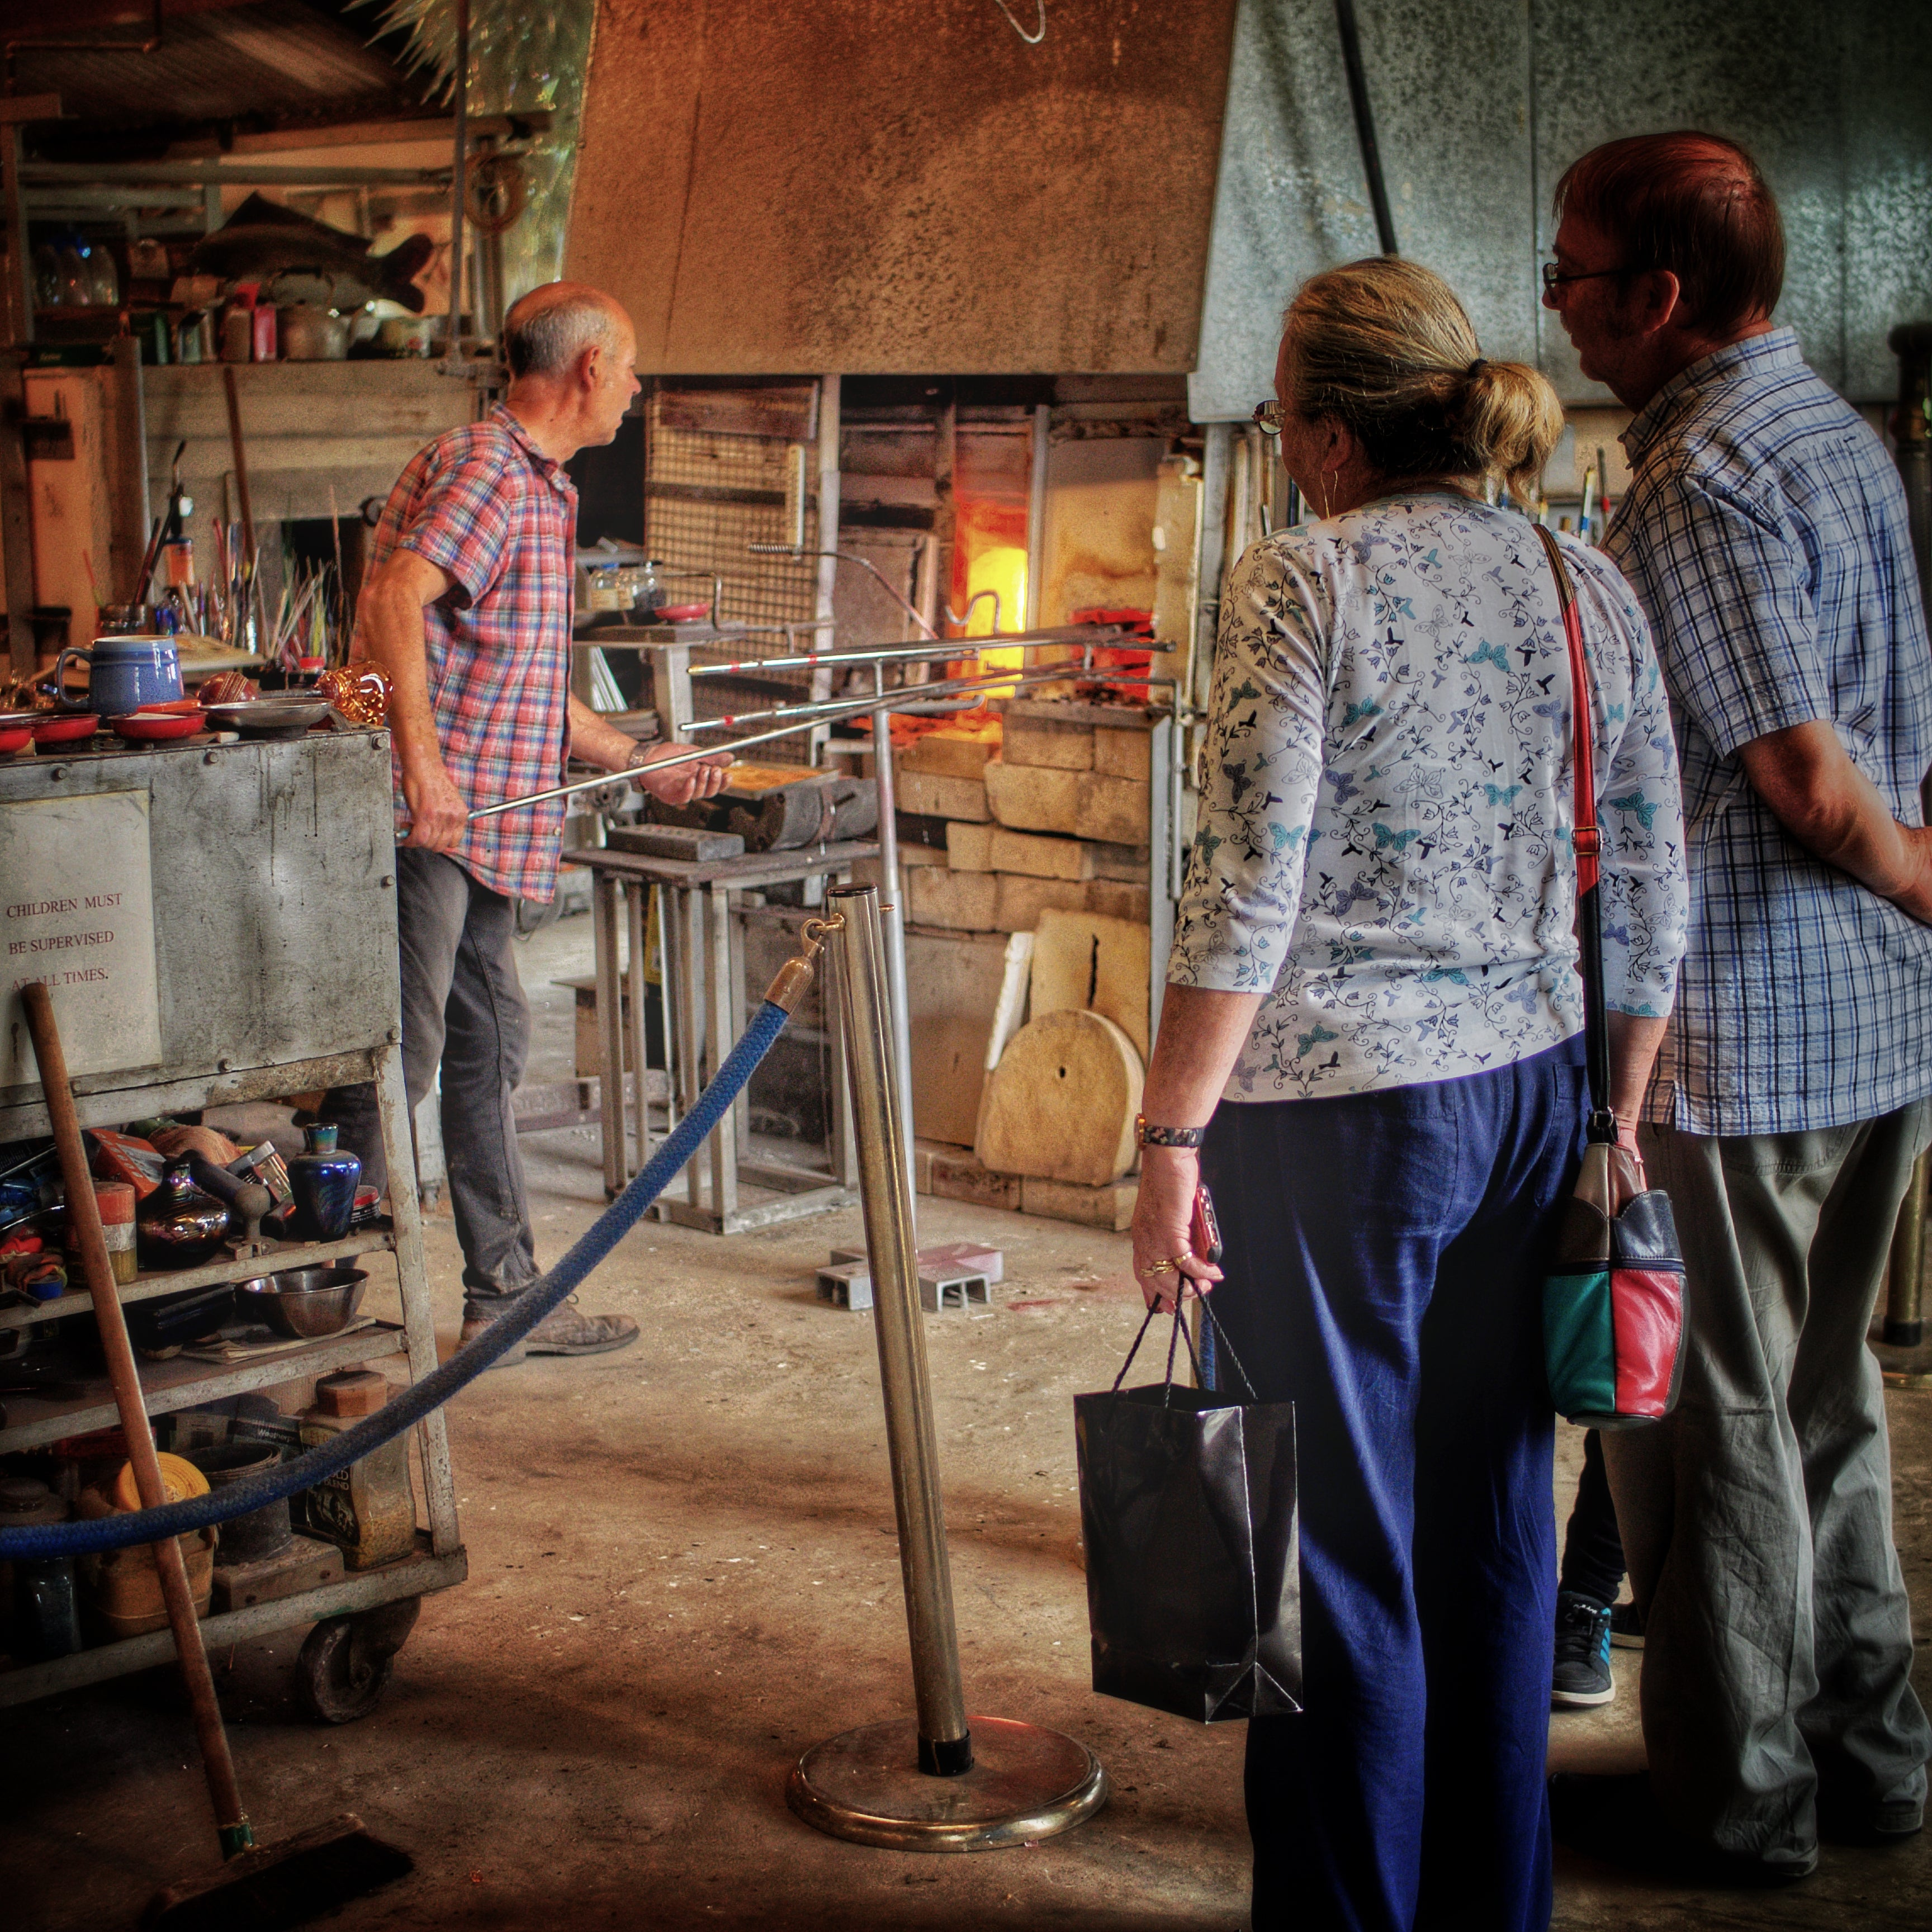 People are welcome to watch the glassblowers at work.